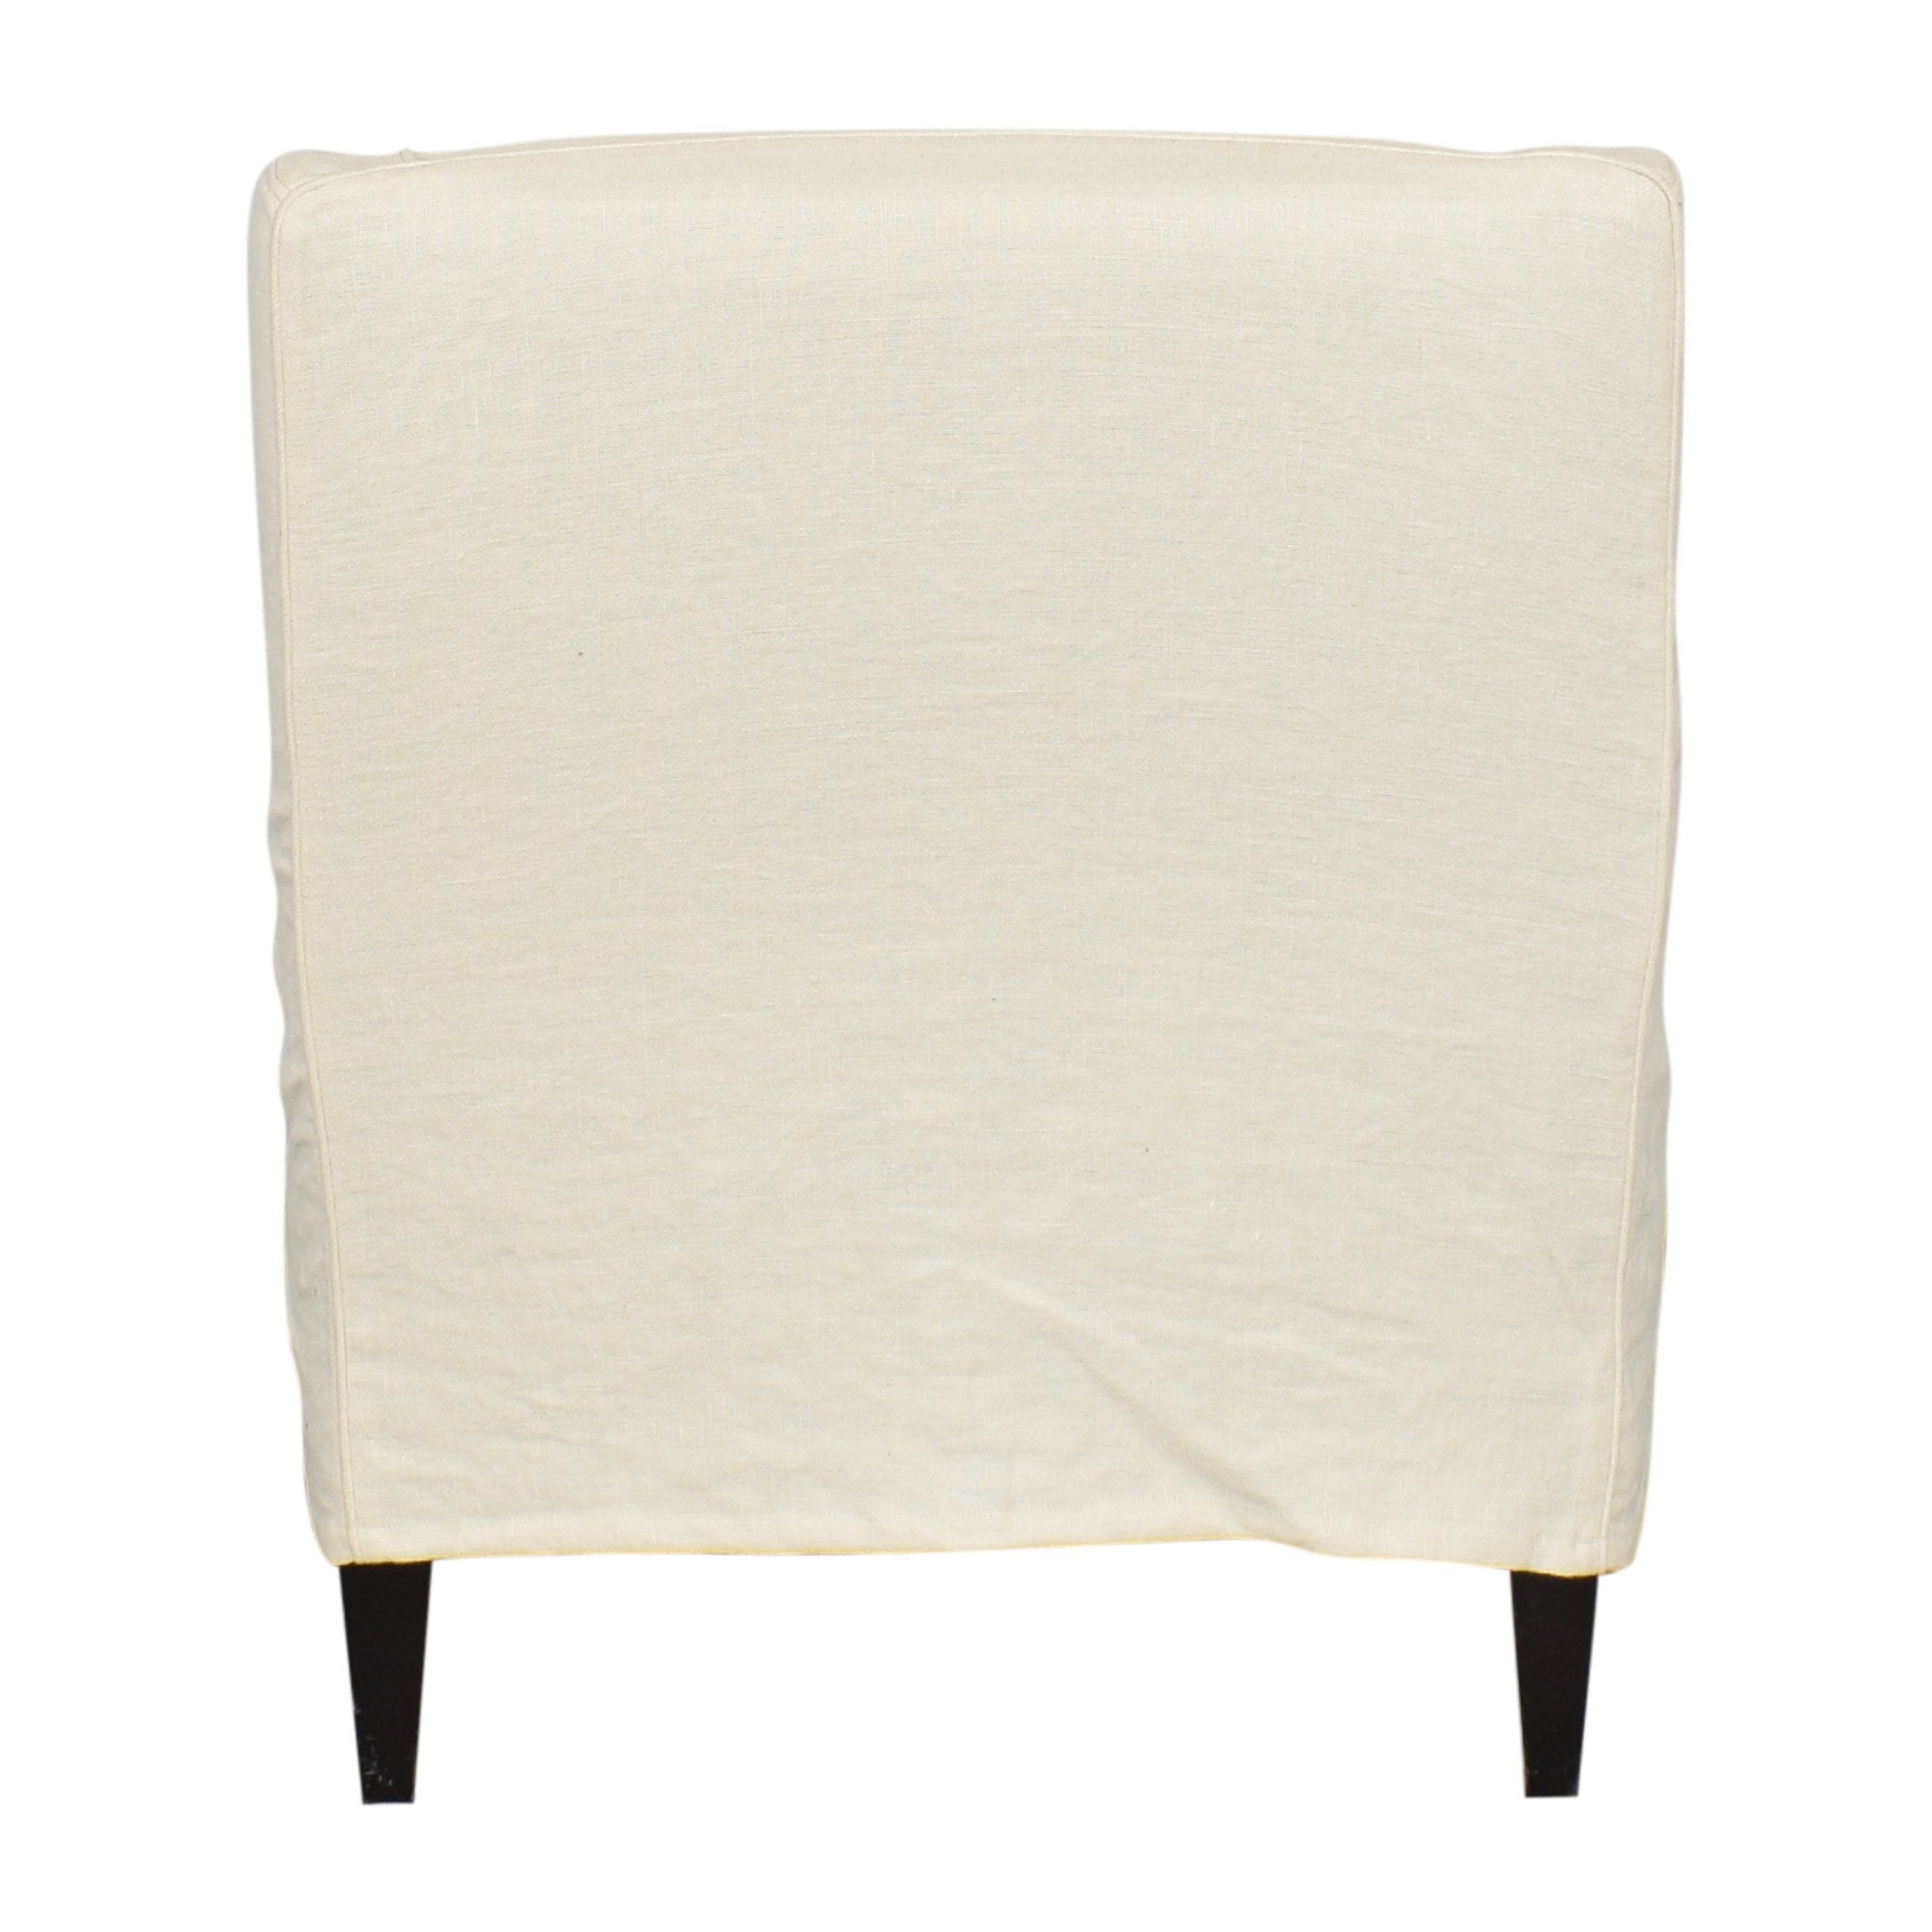 Crate & Barrel Crate & Barrel Slipcovered Accent Chair ma